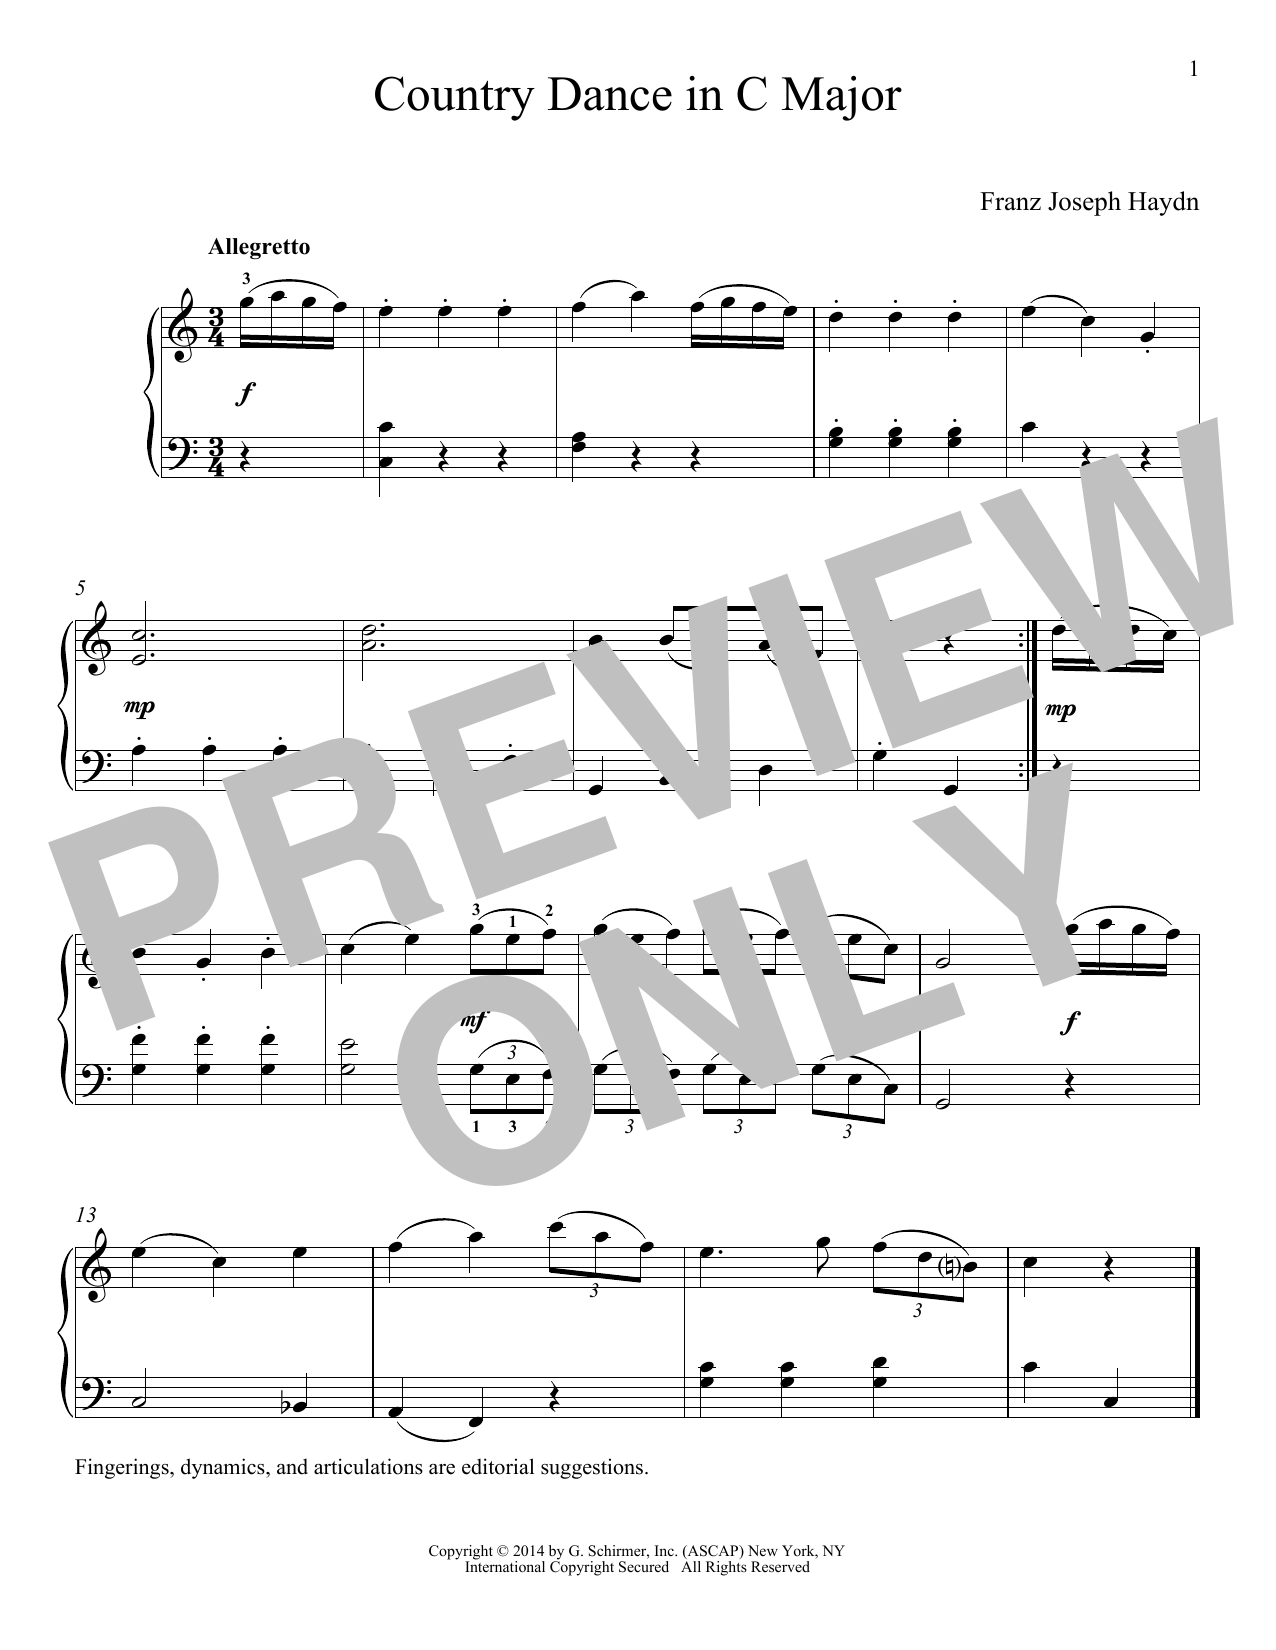 Franz Joseph Haydn Country Dance In C Major sheet music notes and chords